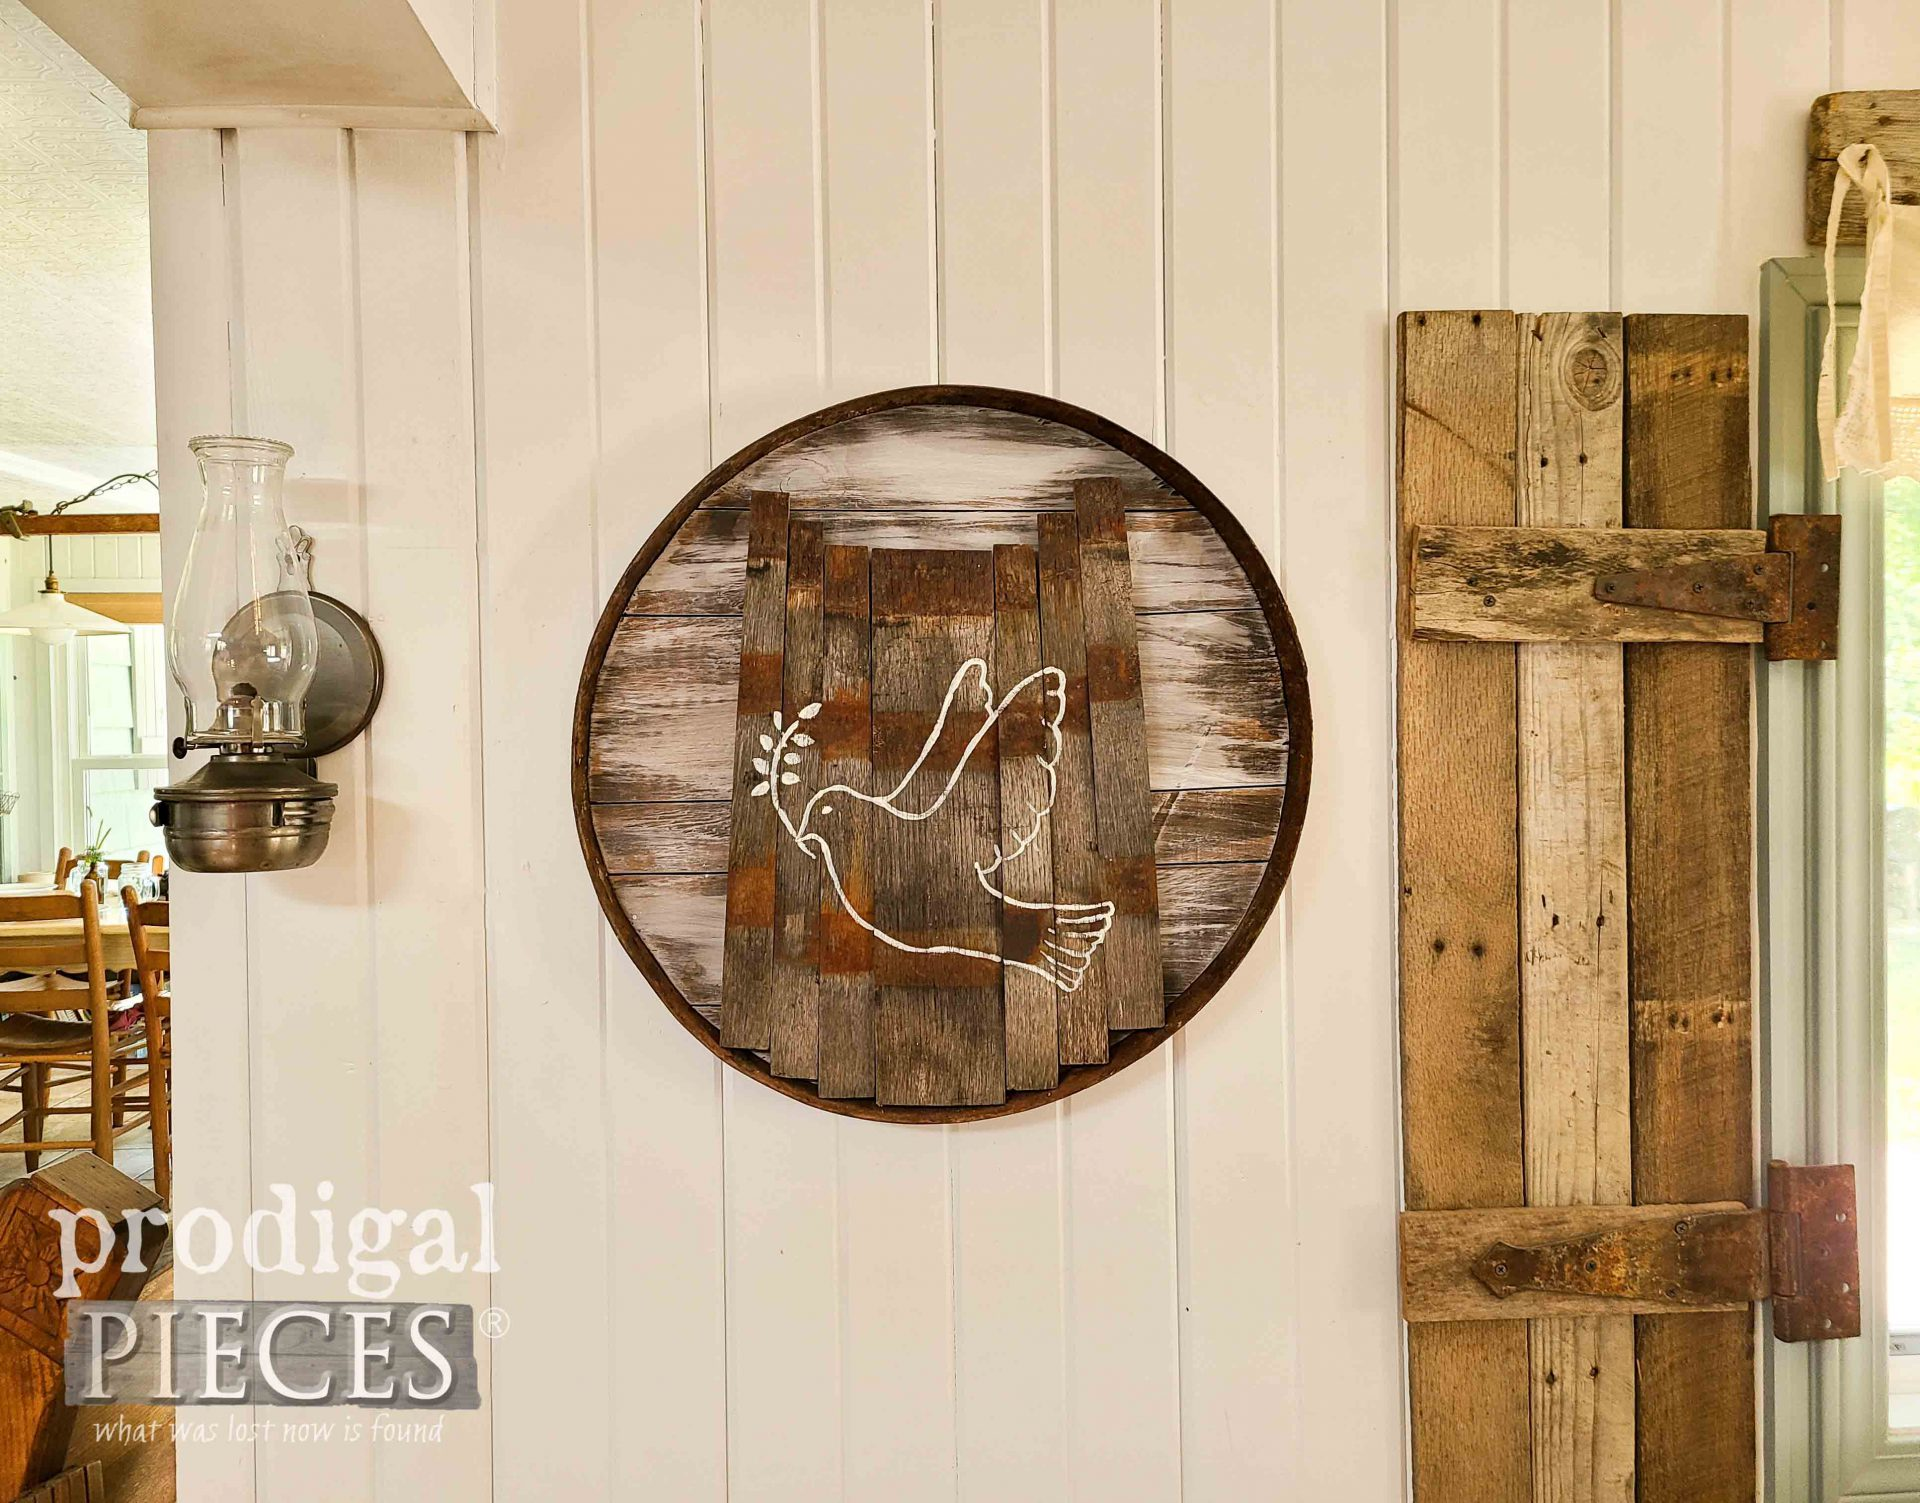 Handmade Upcycled Whiskey Barrel Dove Art by Larissa of Prodigal Pieces | prodigalpieces.com #prodigalpieces #home #farmhouse #homedecor #diy #art